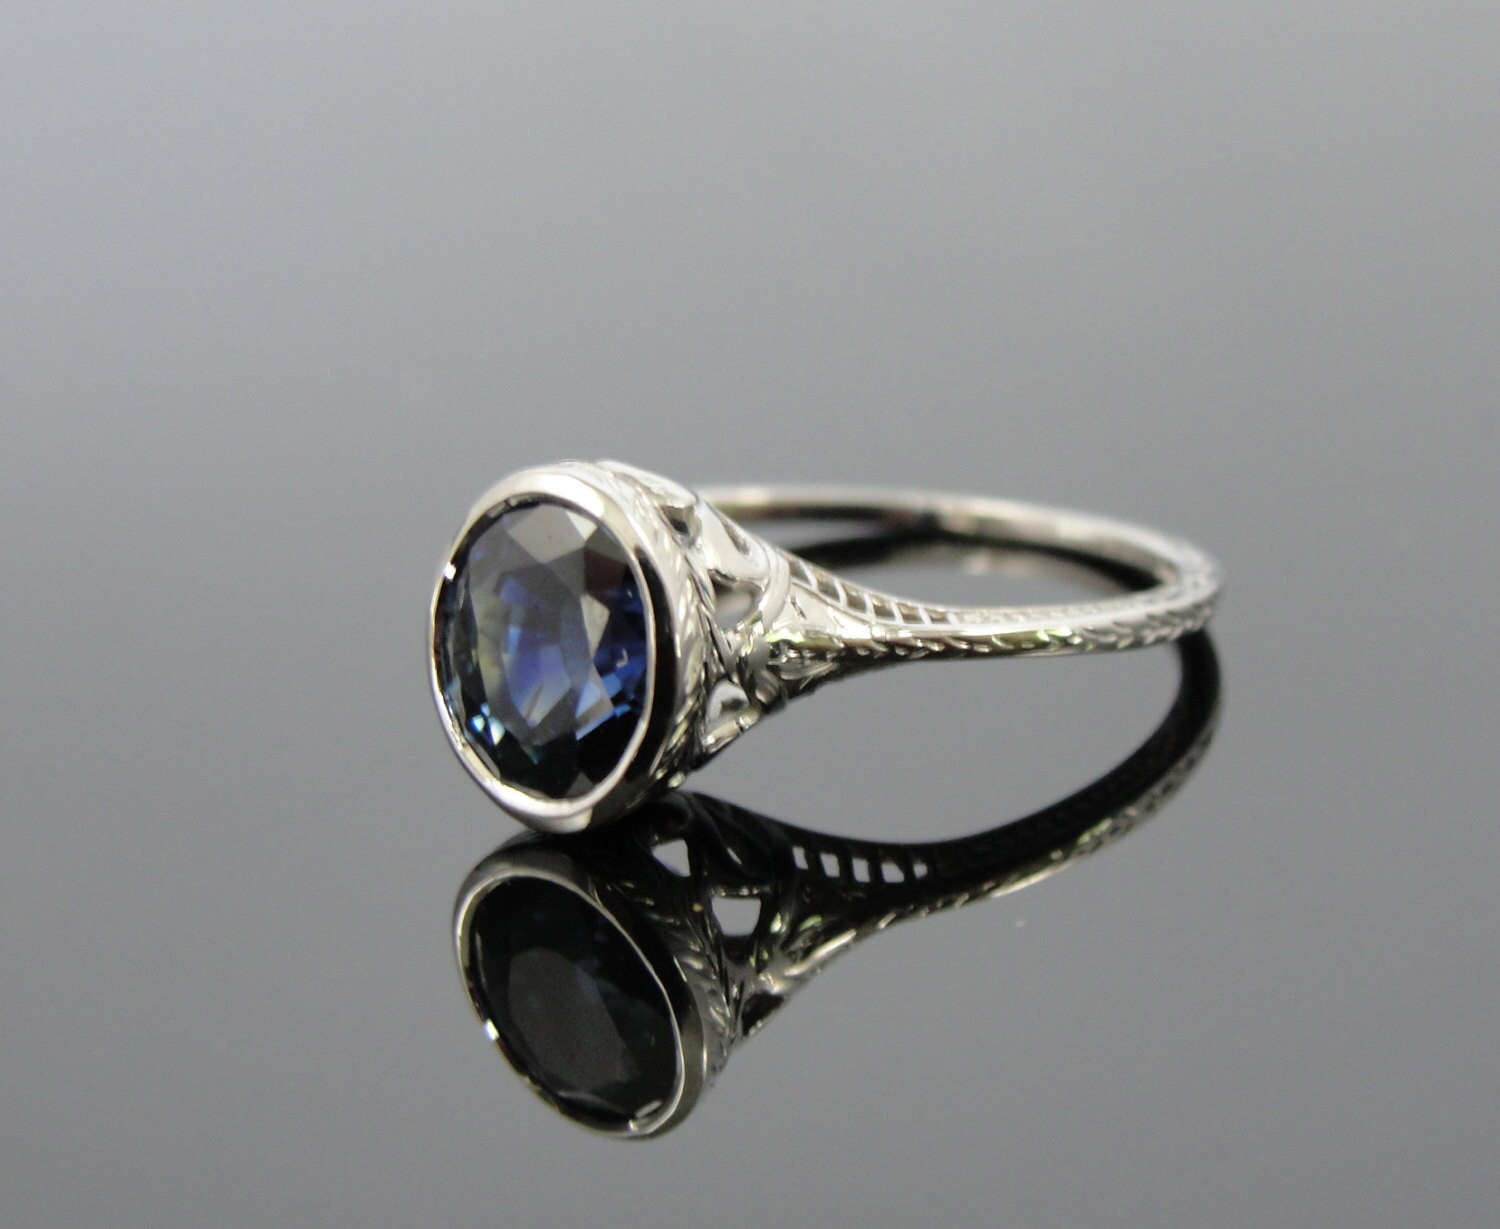 Unique Art Deco Sapphire Engagement Ring in by MSJewelers on Etsy